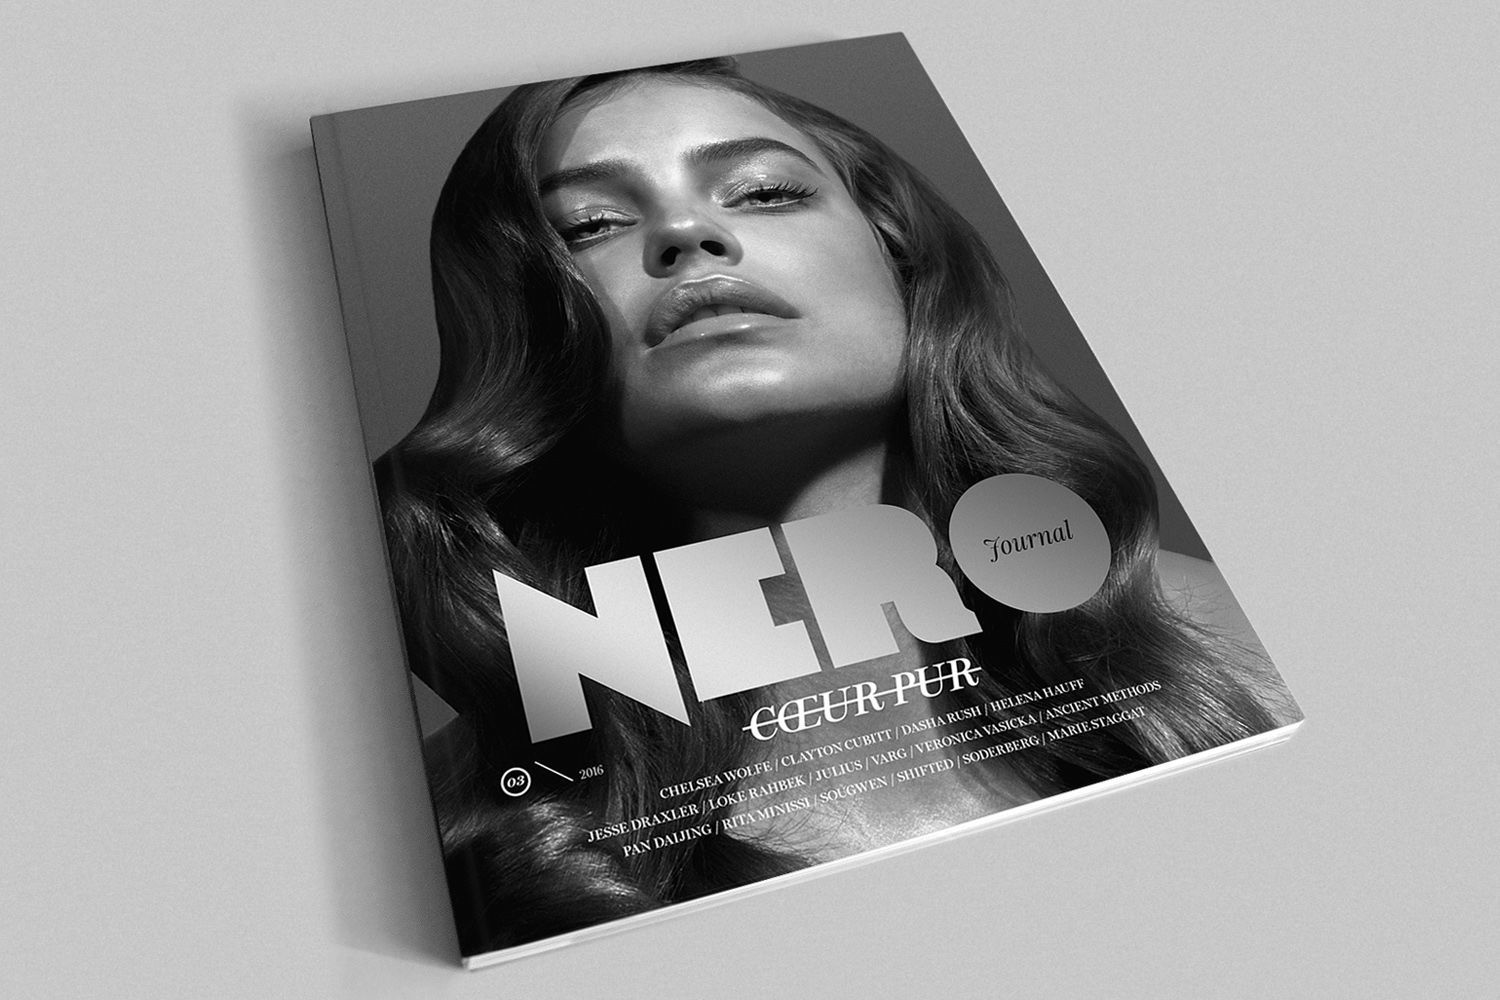 NERO Journal magazin Nr.3 - 1 by José Simon